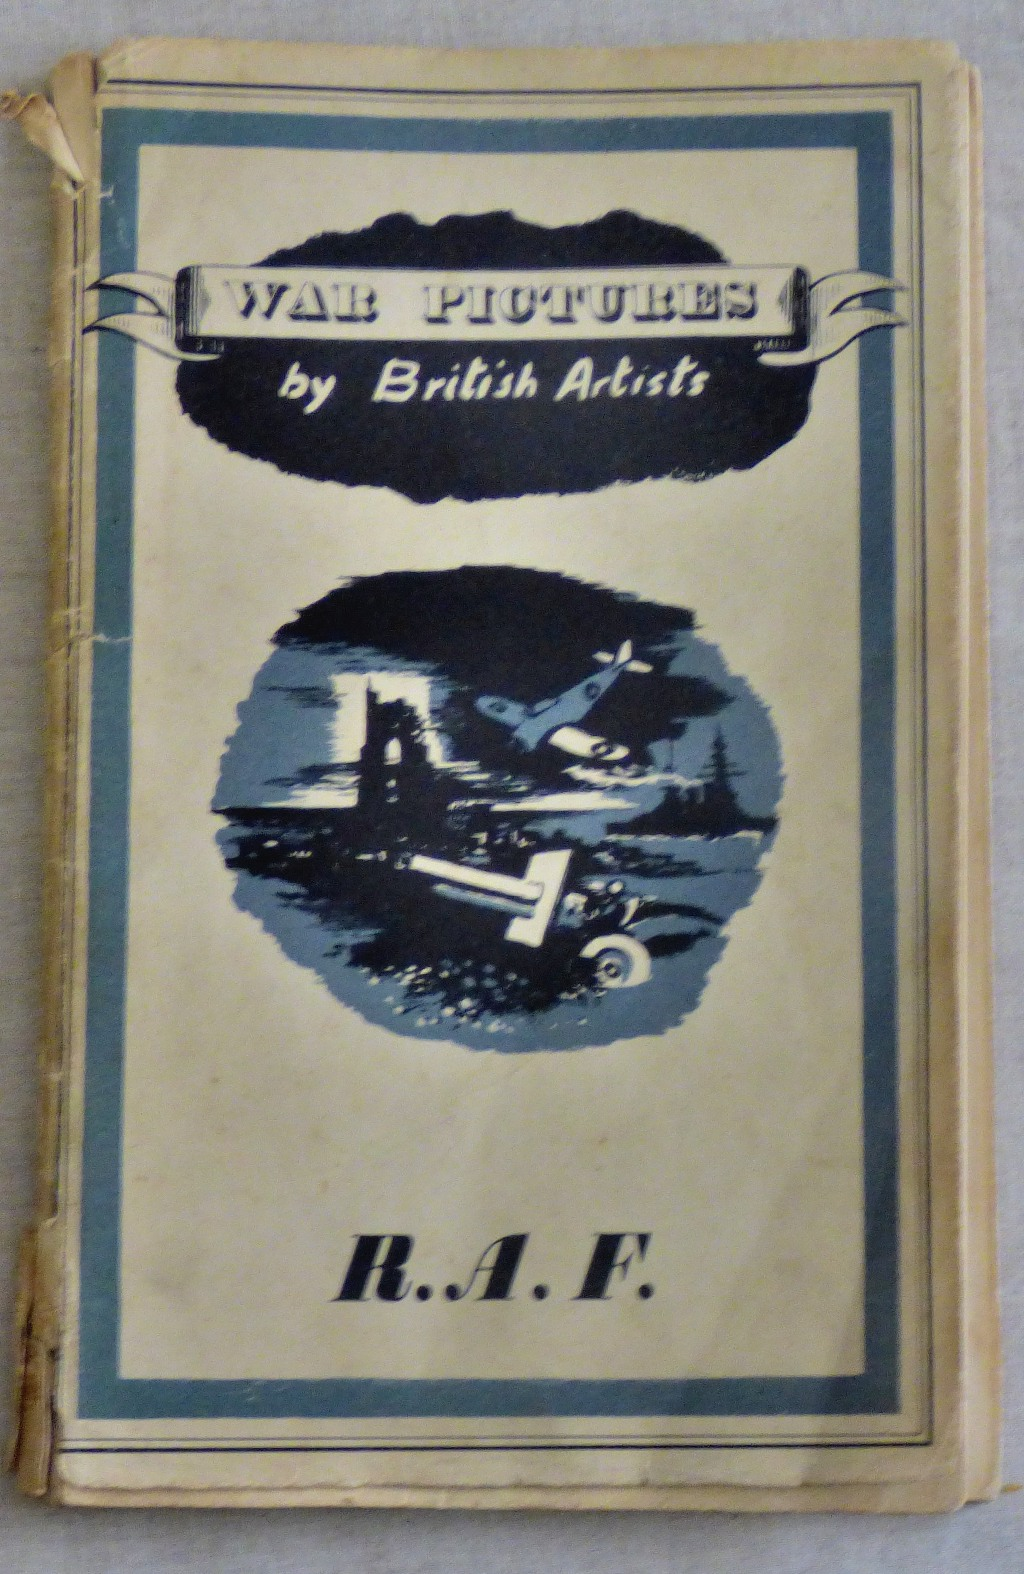 Lot 53 - Booklet - War Pictures by British Artists R.A.F presented to B.A.Harding. Good condition